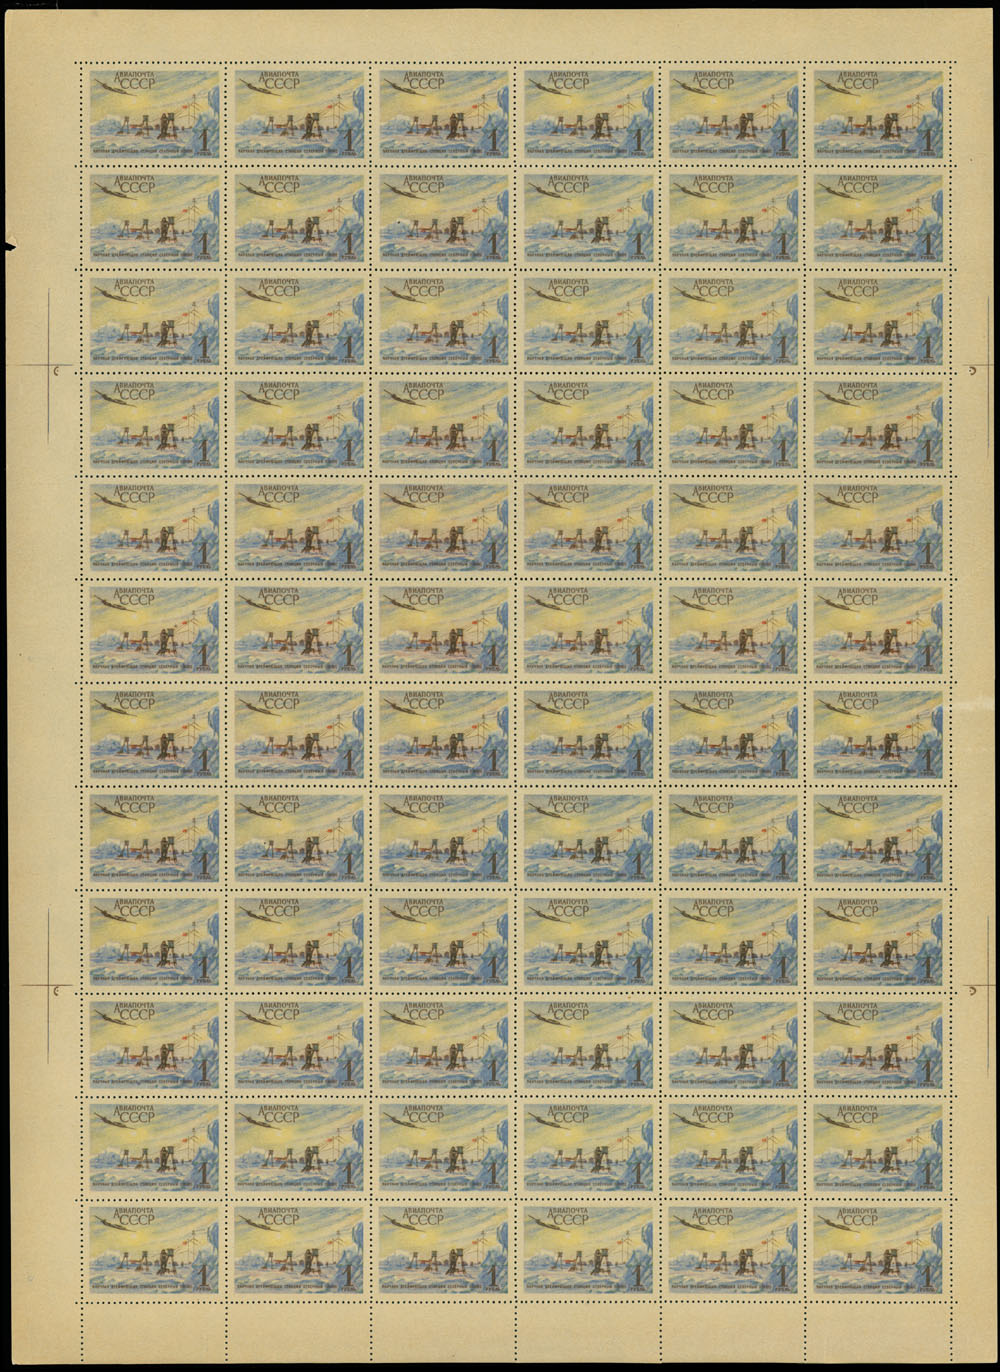 Lot 1560 - Worldwide Topical issues - North Pole Exploration soviet union -  Raritan Stamps Inc. Live Bidding Auction #89